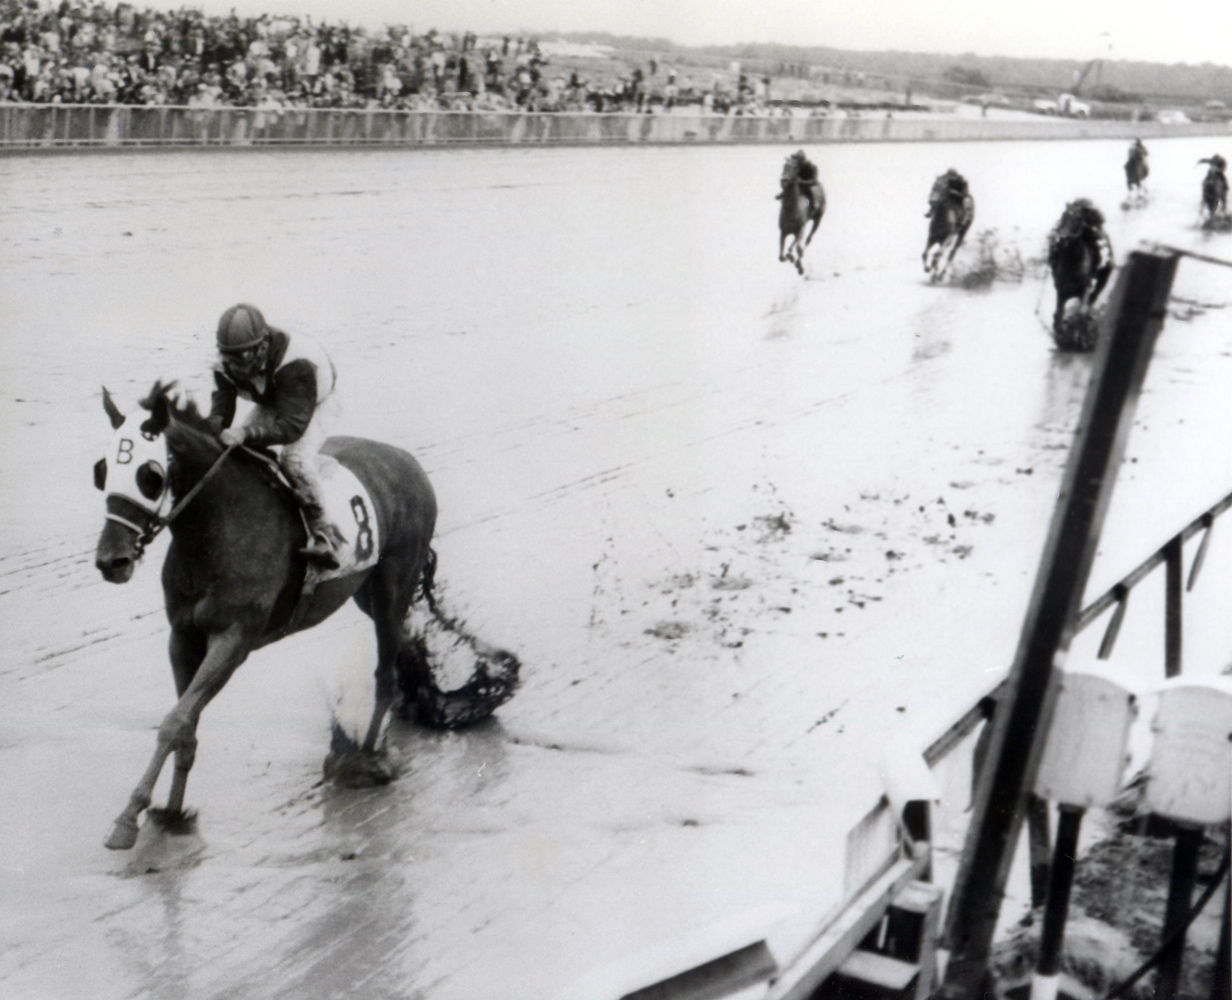 Sam Boulmetis and Tosmah winning the 1963 Mermaid Handicap at Atlantic City (Jim Raftery Turfotos/Museum Collection)